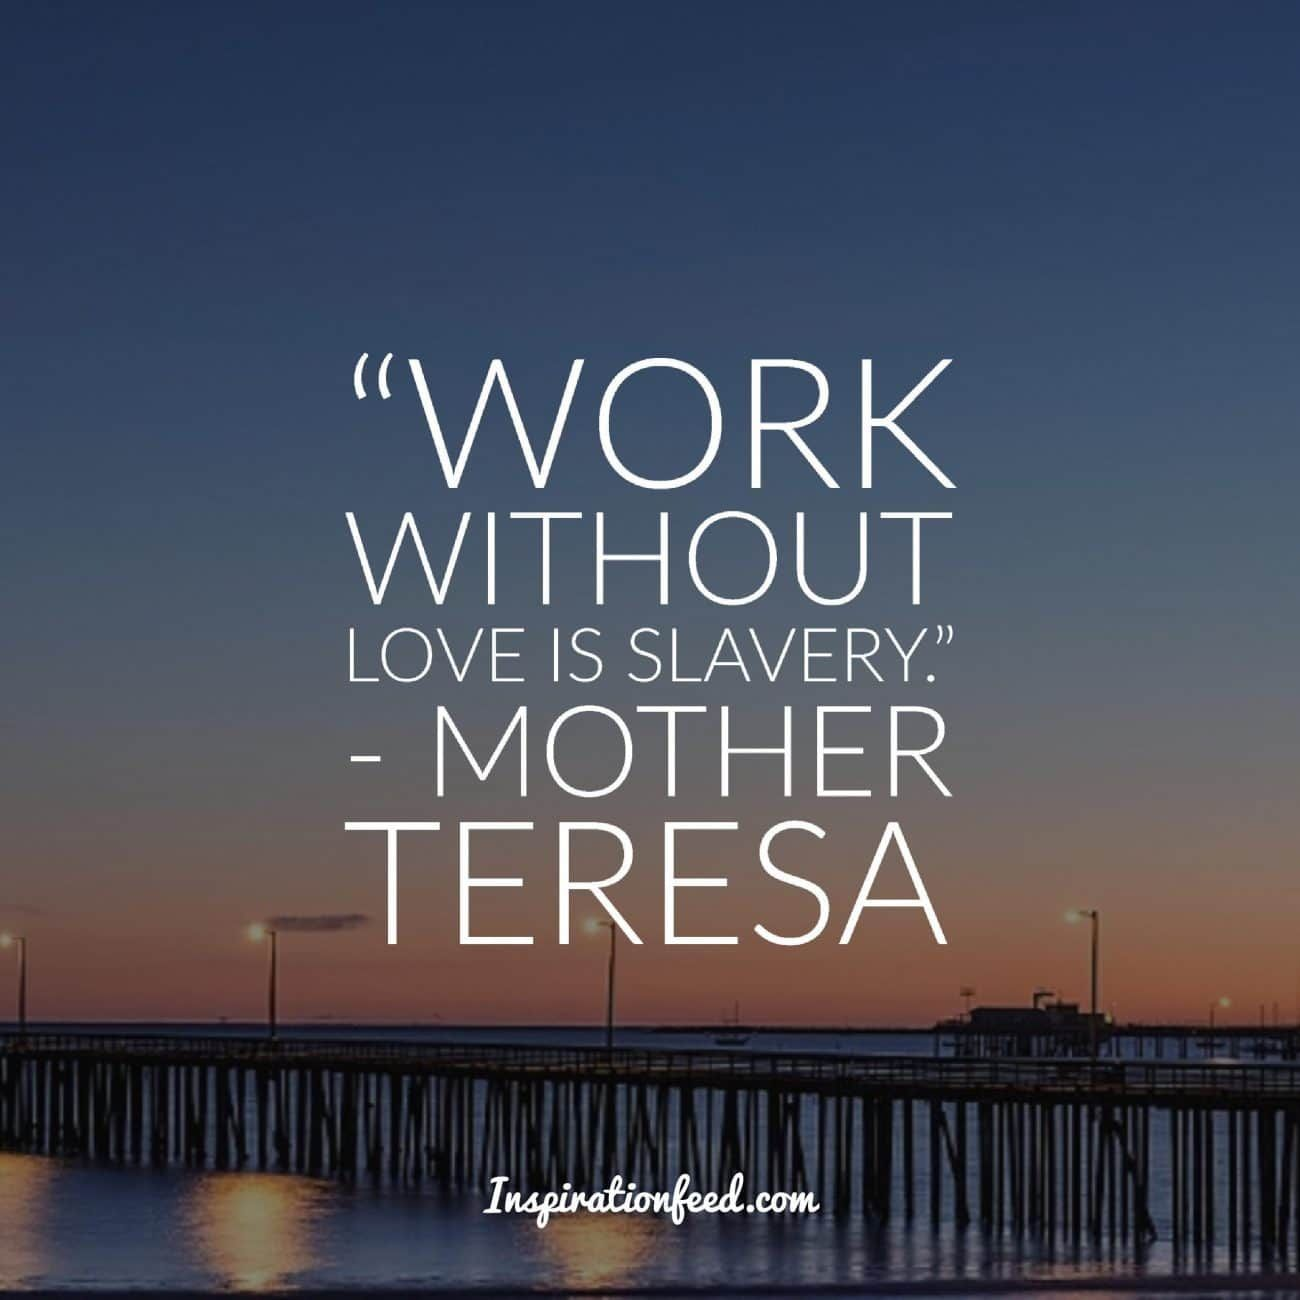 Mother Teresa Quotes Life 30 Mother Teresa Quotes On Service Life And Love  Mother Teresa